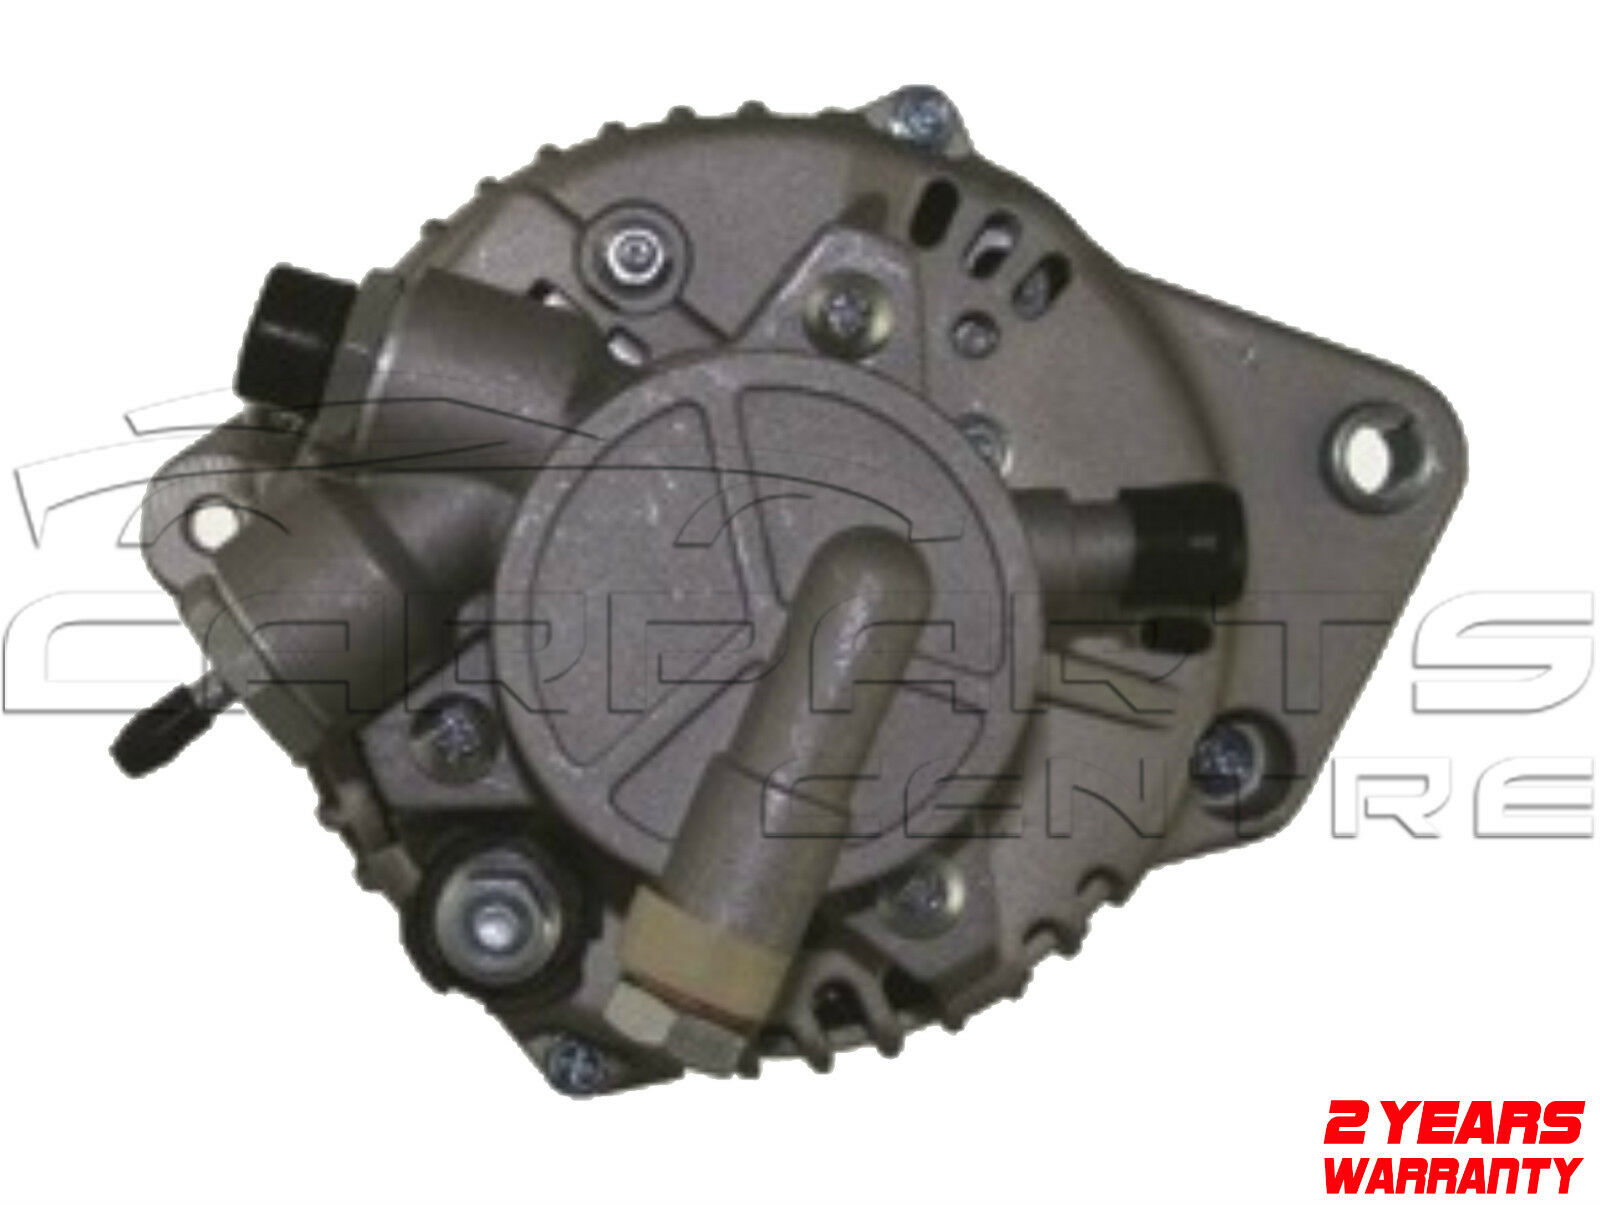 For Astra H 17 Diesel Cdti Z17dth Alternator 110amp Brand New 2 Diagram Besides 2003 Jaguar S Type Wiring Opel Description About Us Payment Shipping Returns 1 X Years Warranty Fits Vauxhall